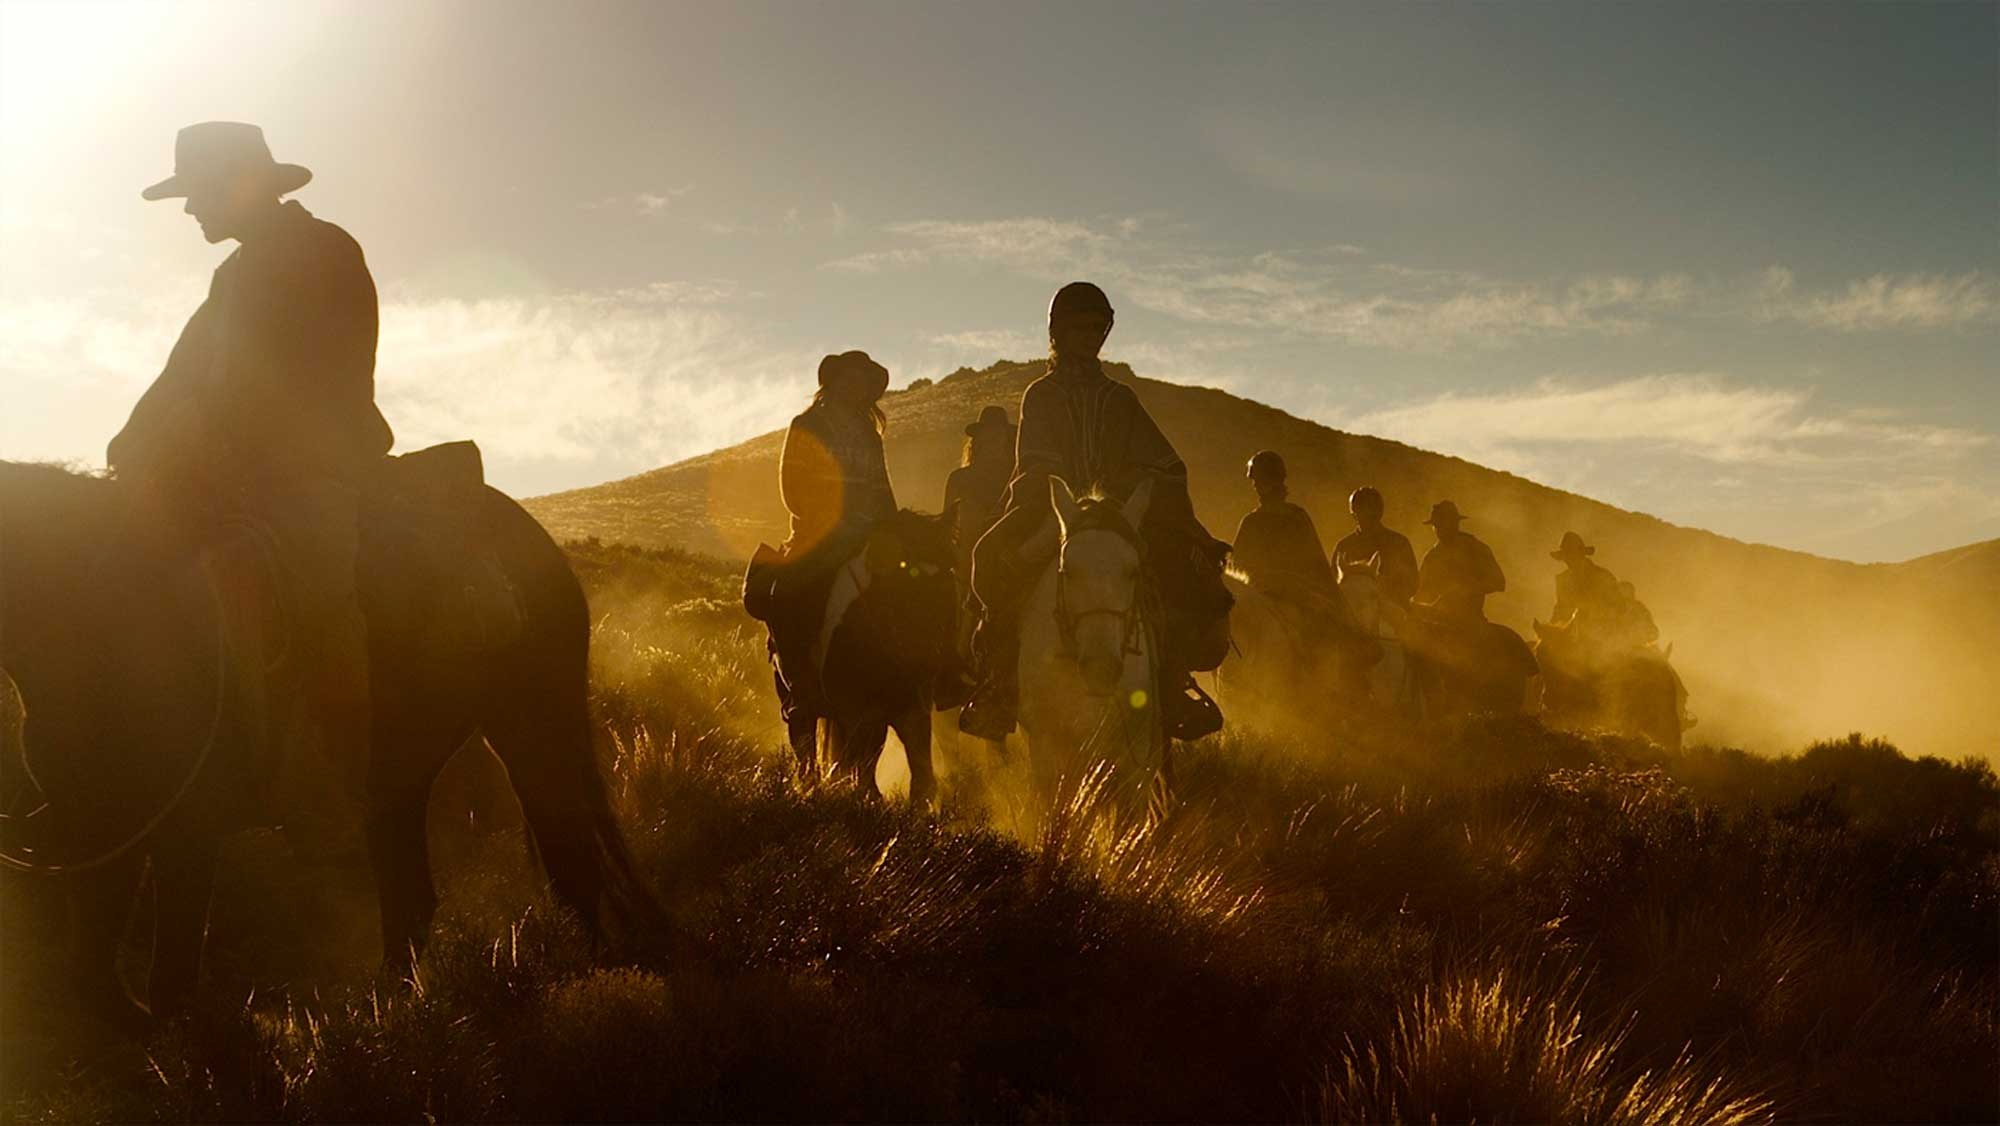 : The riders overcome dust swarms during their final miles homeward.